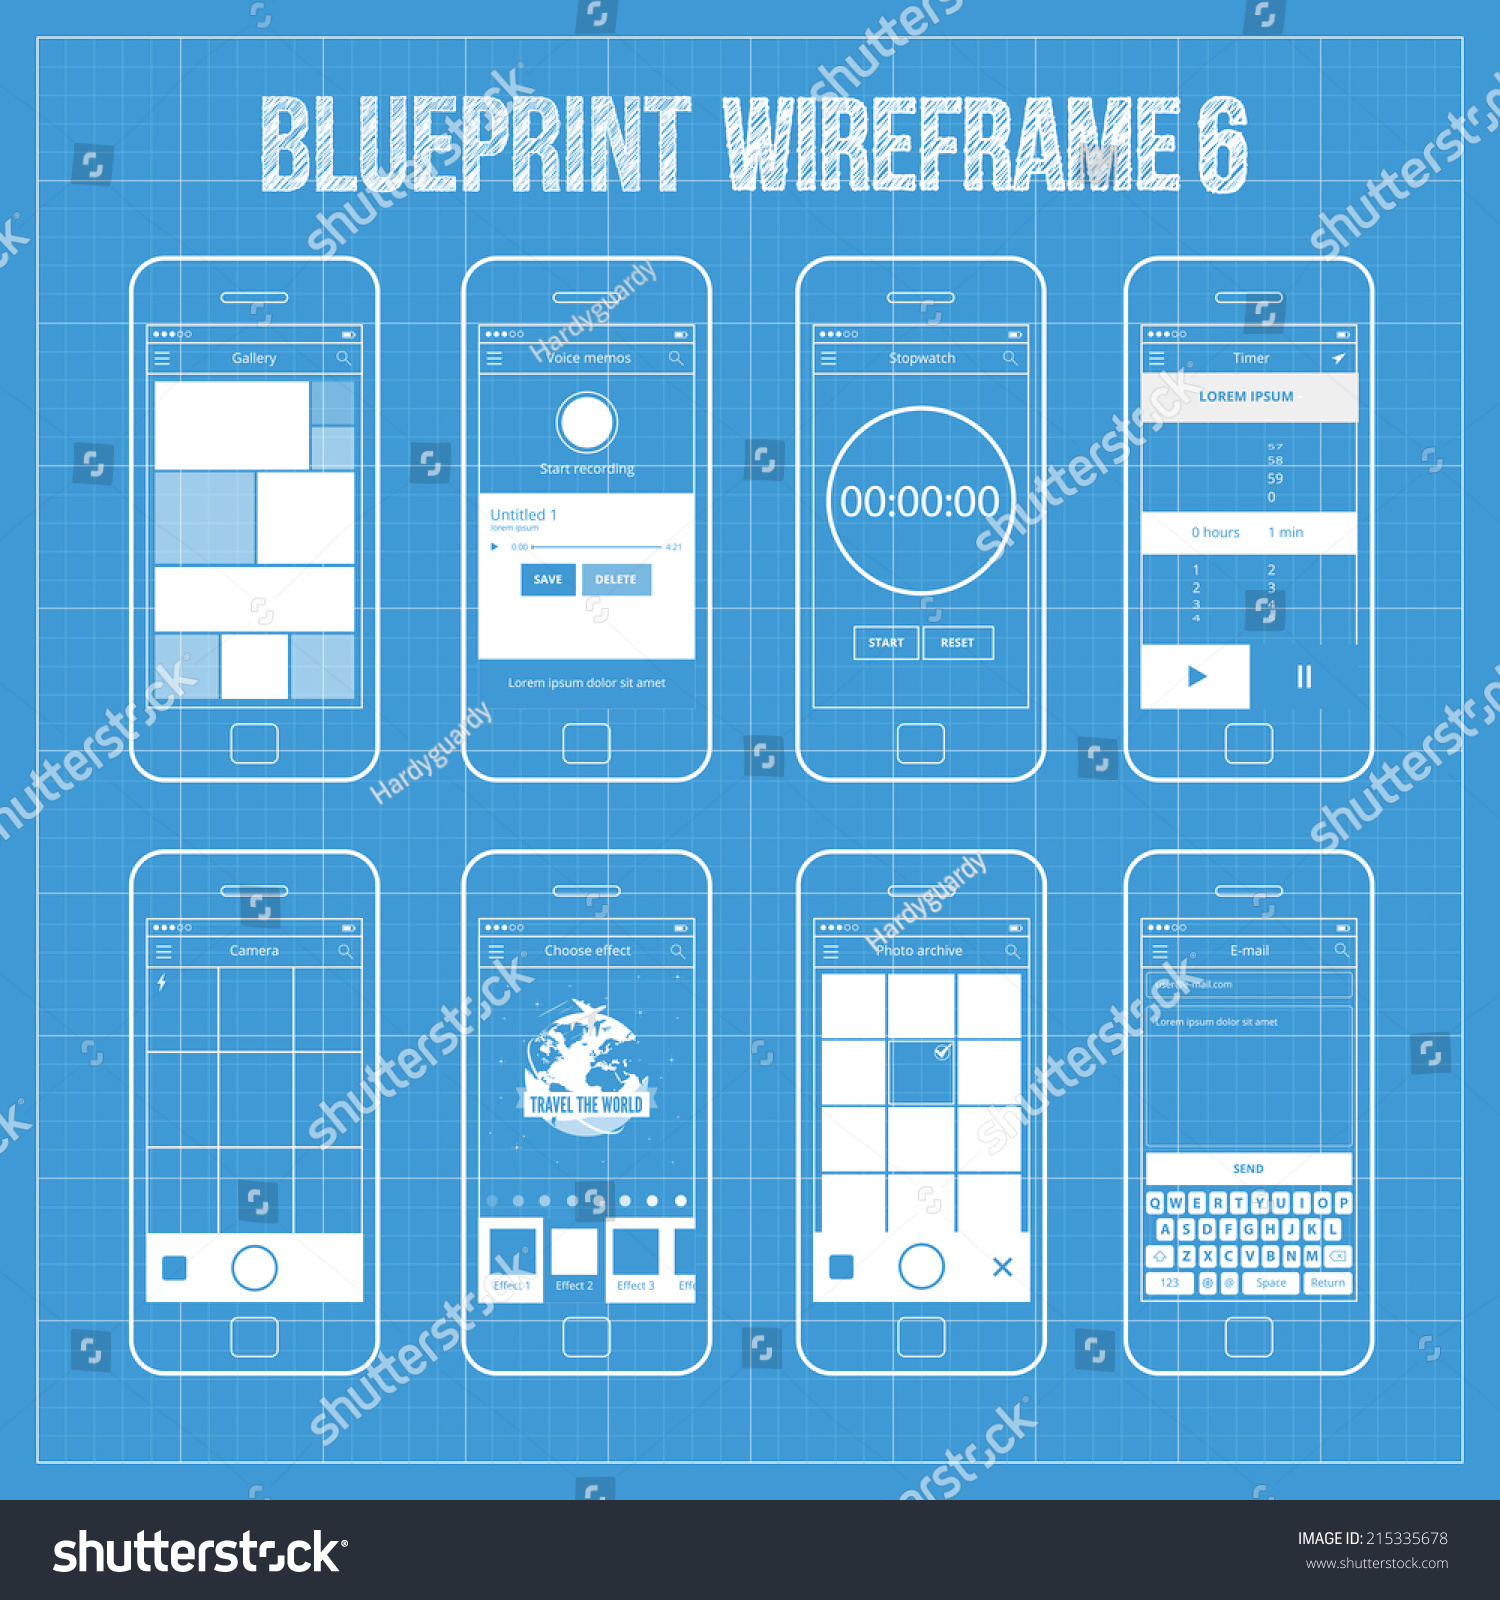 Blueprint wireframe mobile app ui kit stock vector 215335678 blueprint wireframe mobile app ui kit 6 gallery screen voice memos screen stopwatch malvernweather Image collections